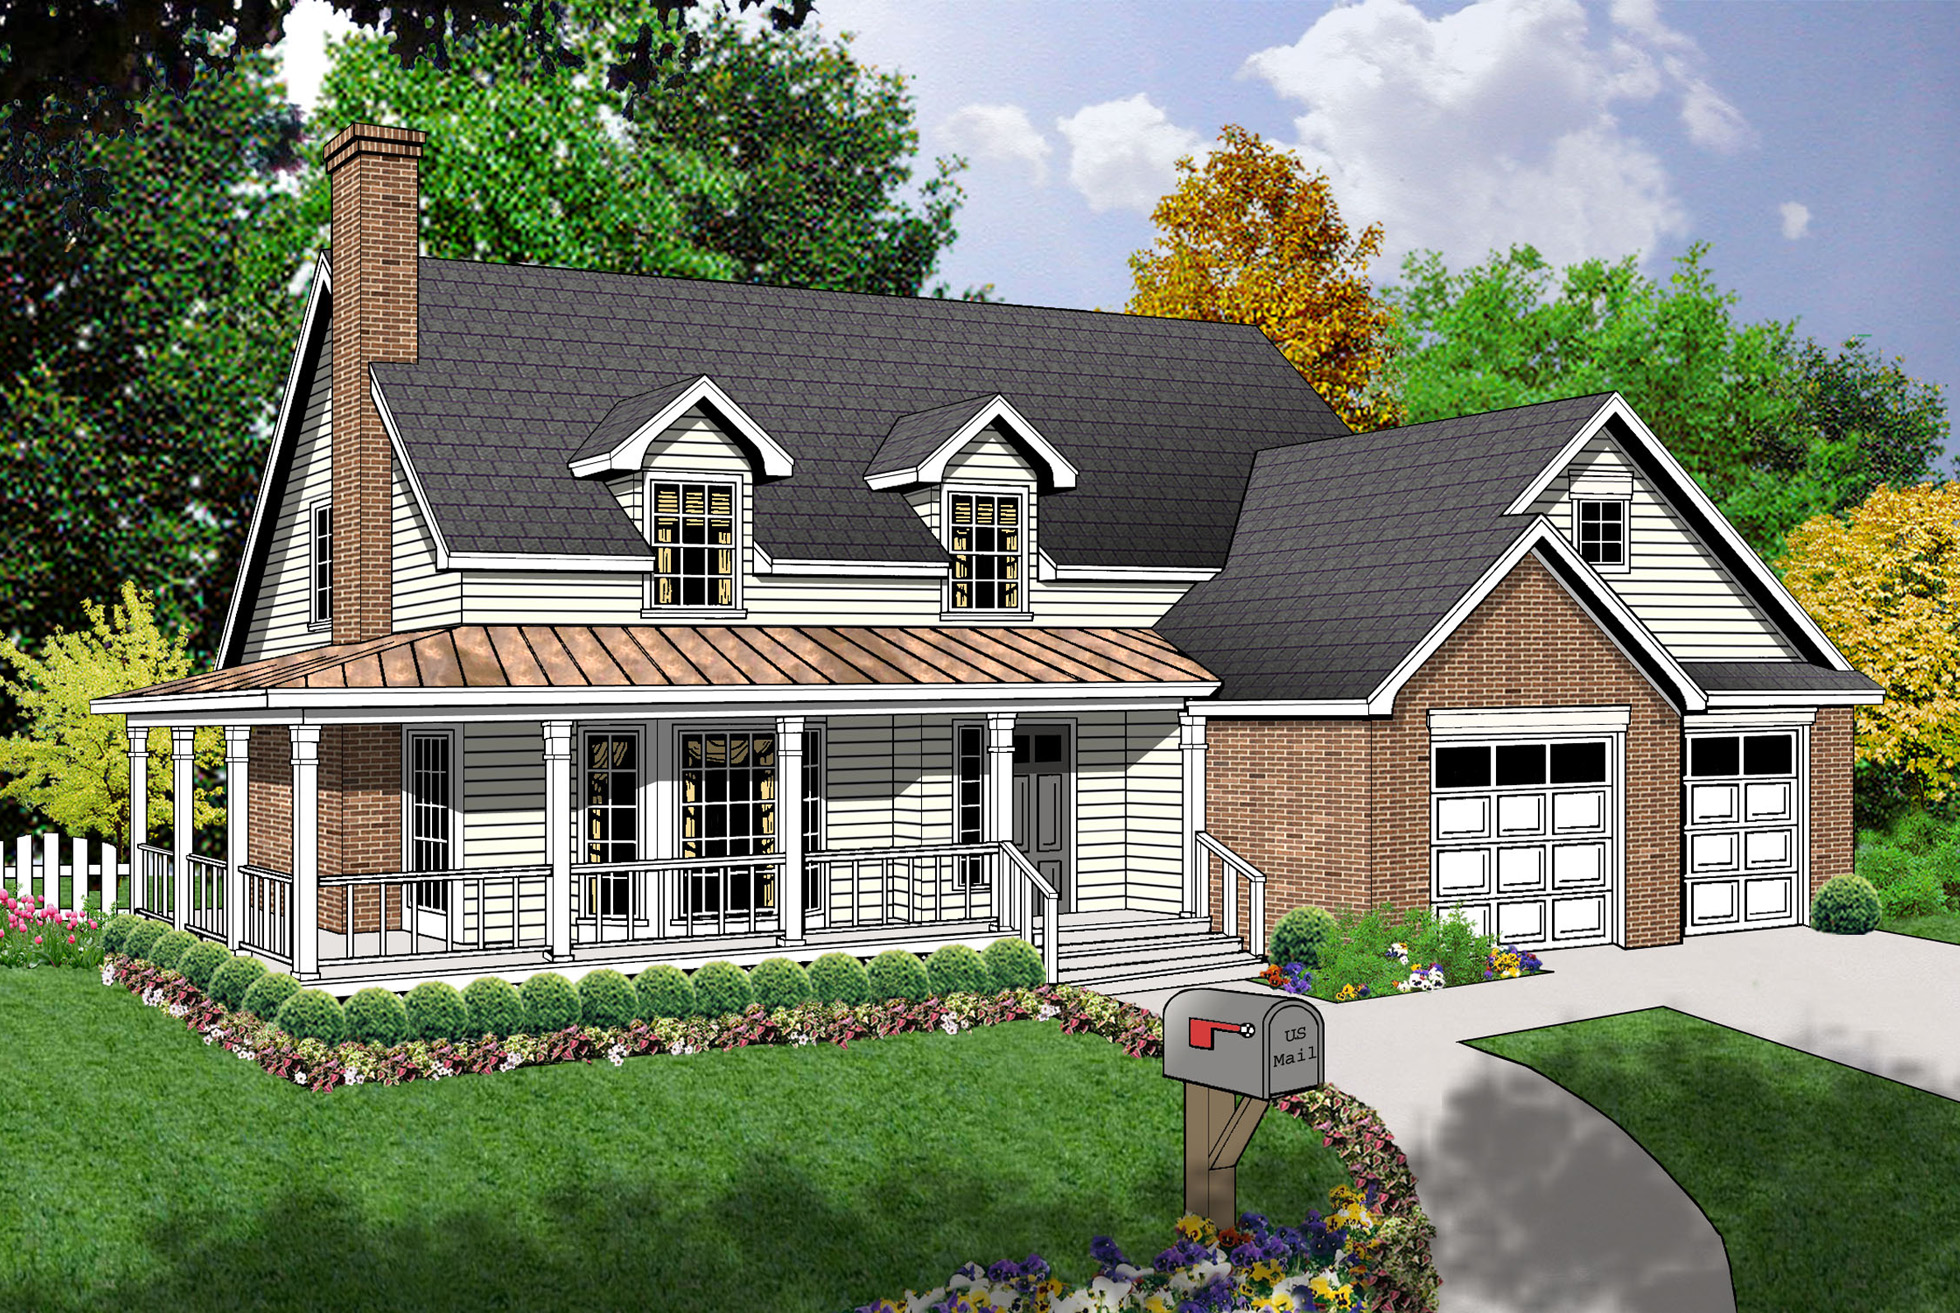 Charming Country Design - 7405rd 1st Floor Master Suite